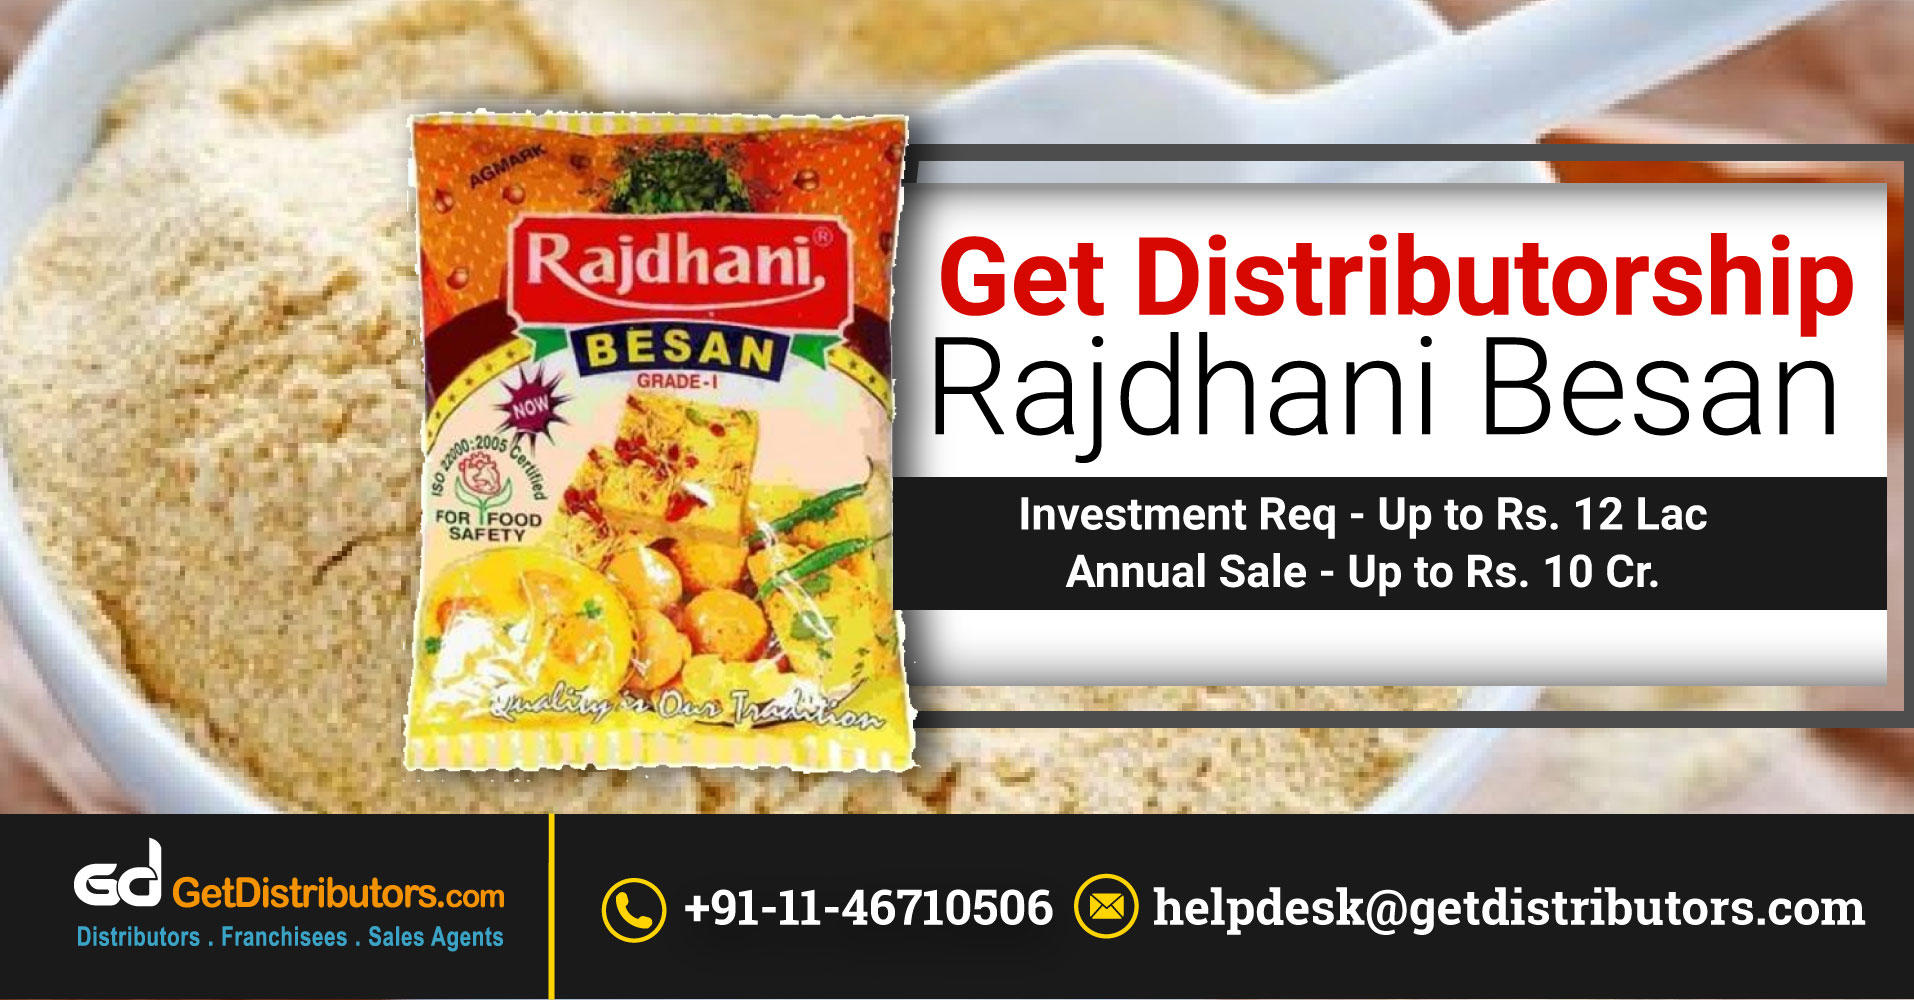 Stop Wasting Time And Get Distributorship of Rajdhani Besan